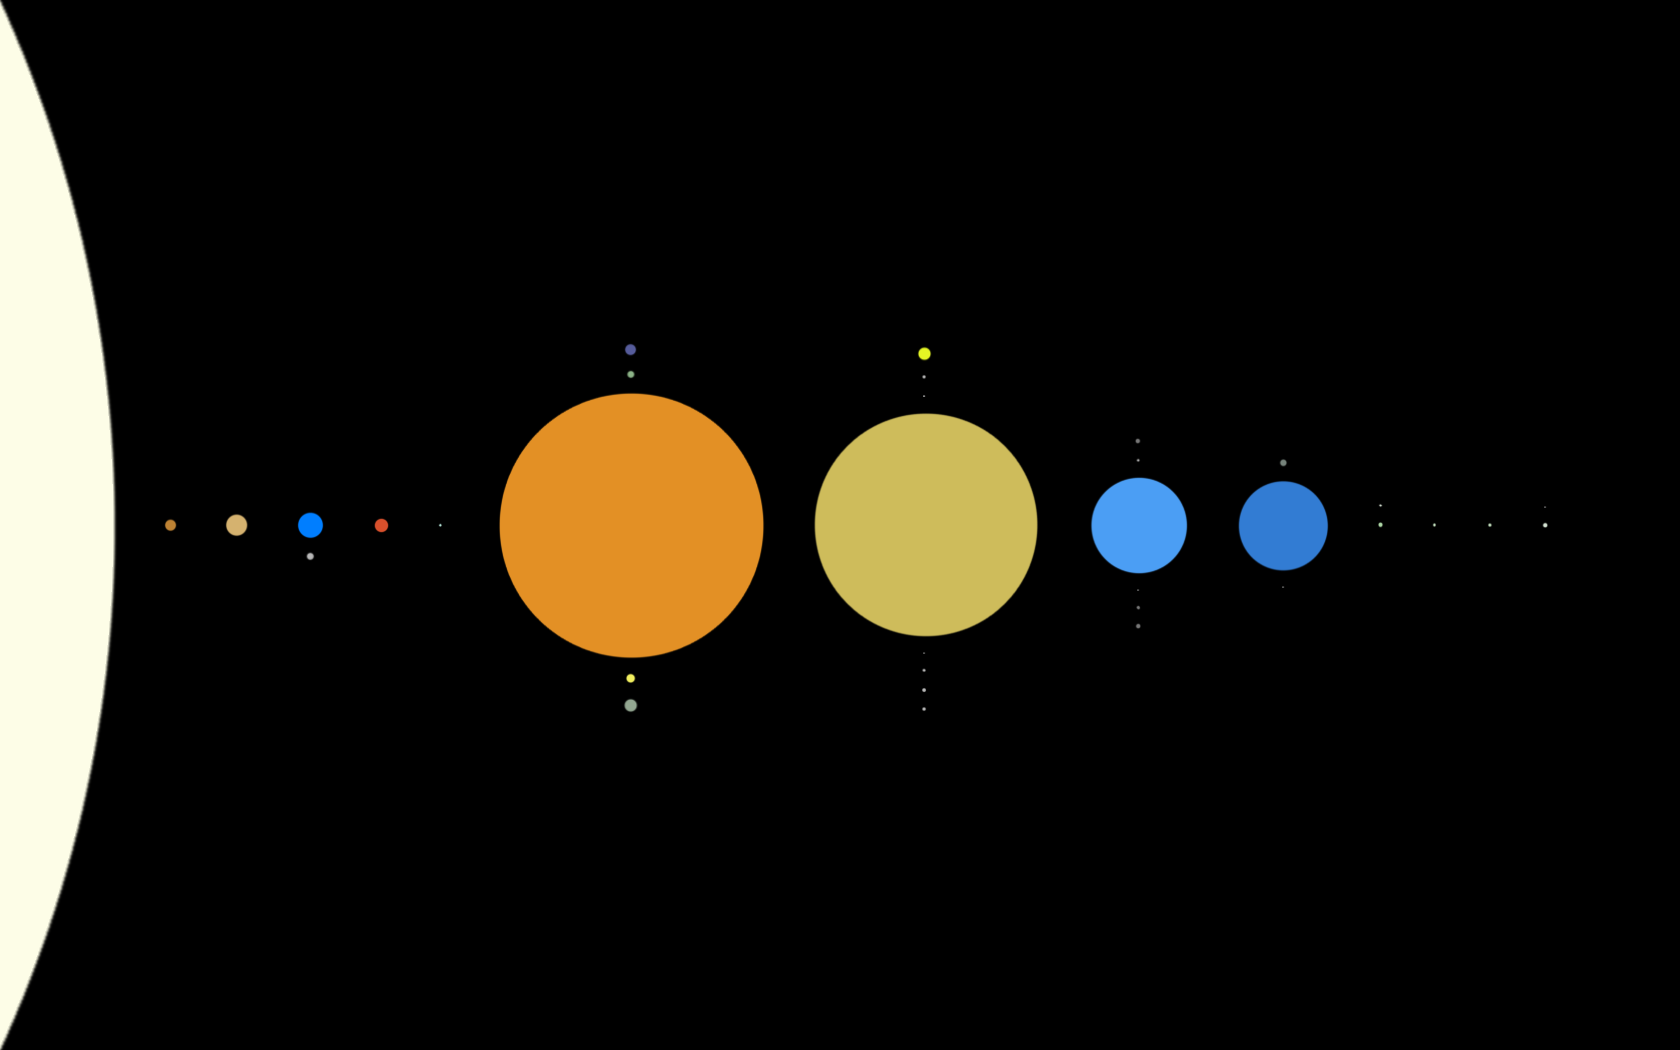 Solar System By StaticDynamic On DeviantArt